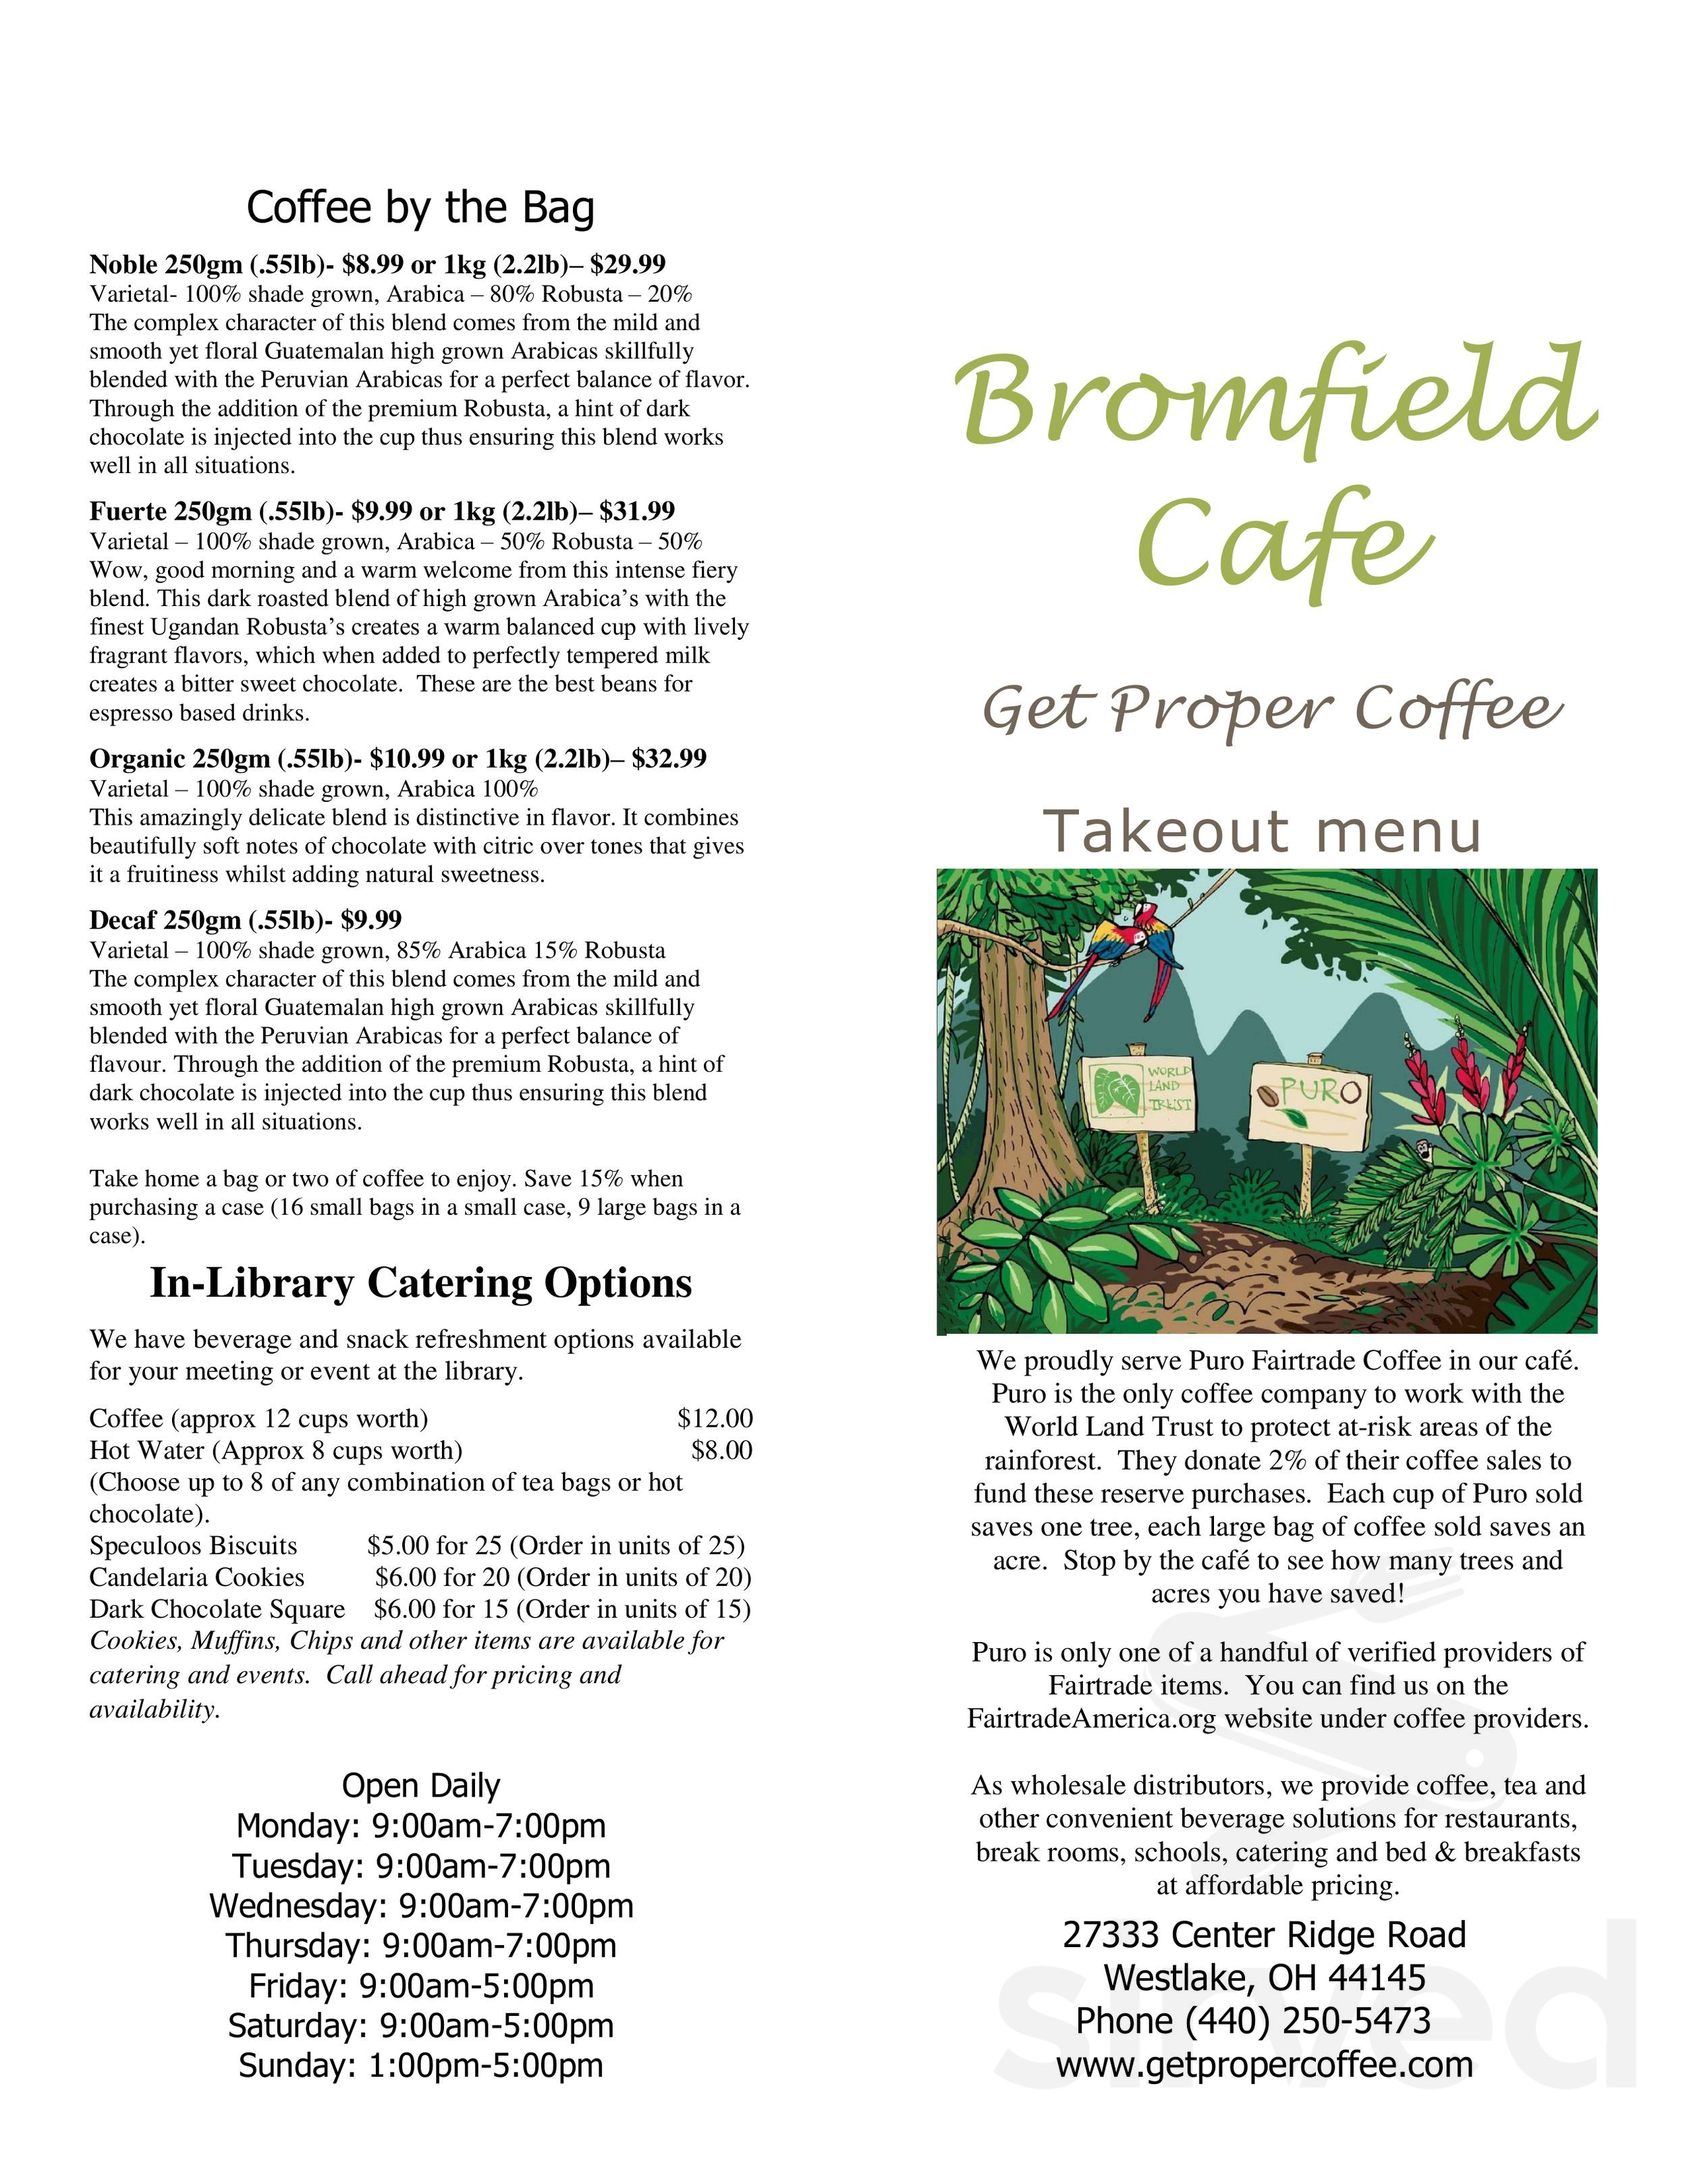 Menu For Bromfield Cafe At Westlake Porter Public Library In